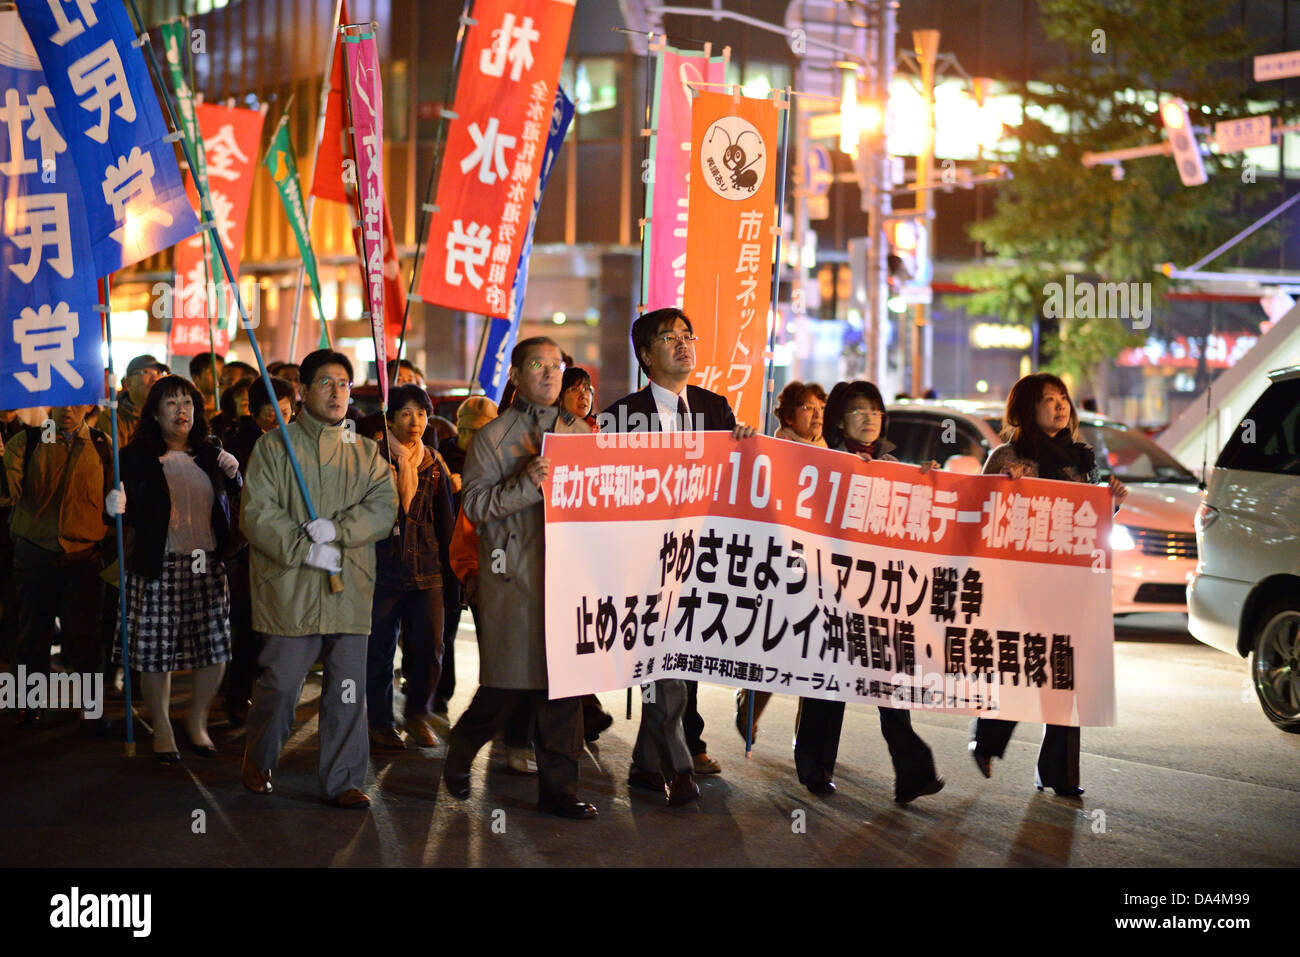 Japanese activists in Sapporo, Japan. - Stock Image